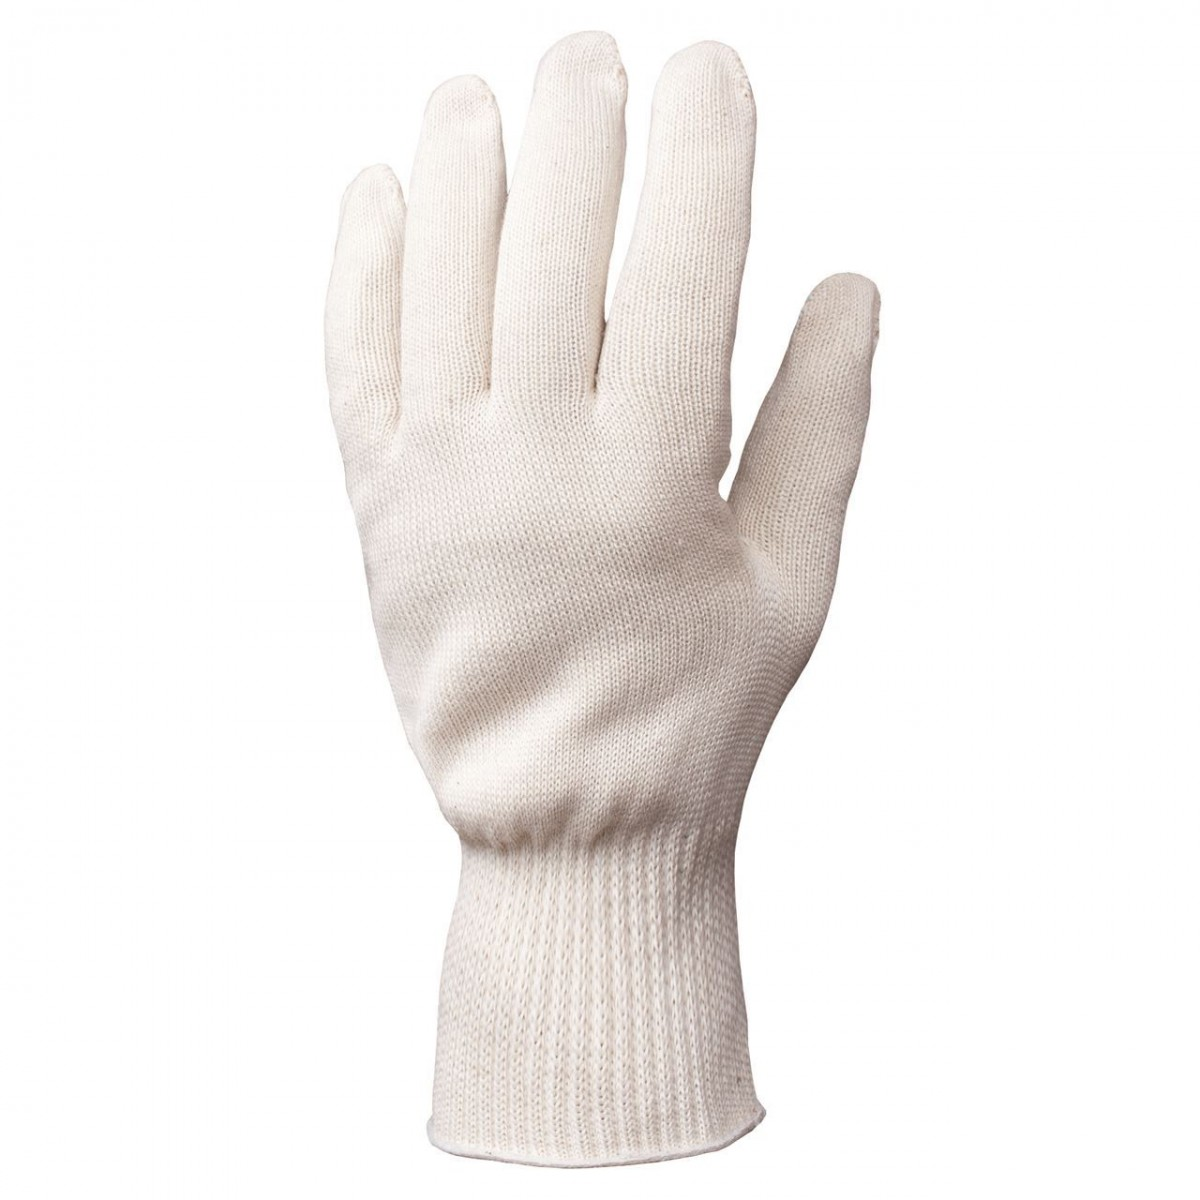 Warwick Mills Turtleskin® CP Heat 350 Terry Cotton Cut and Puncture Resistant Gloves